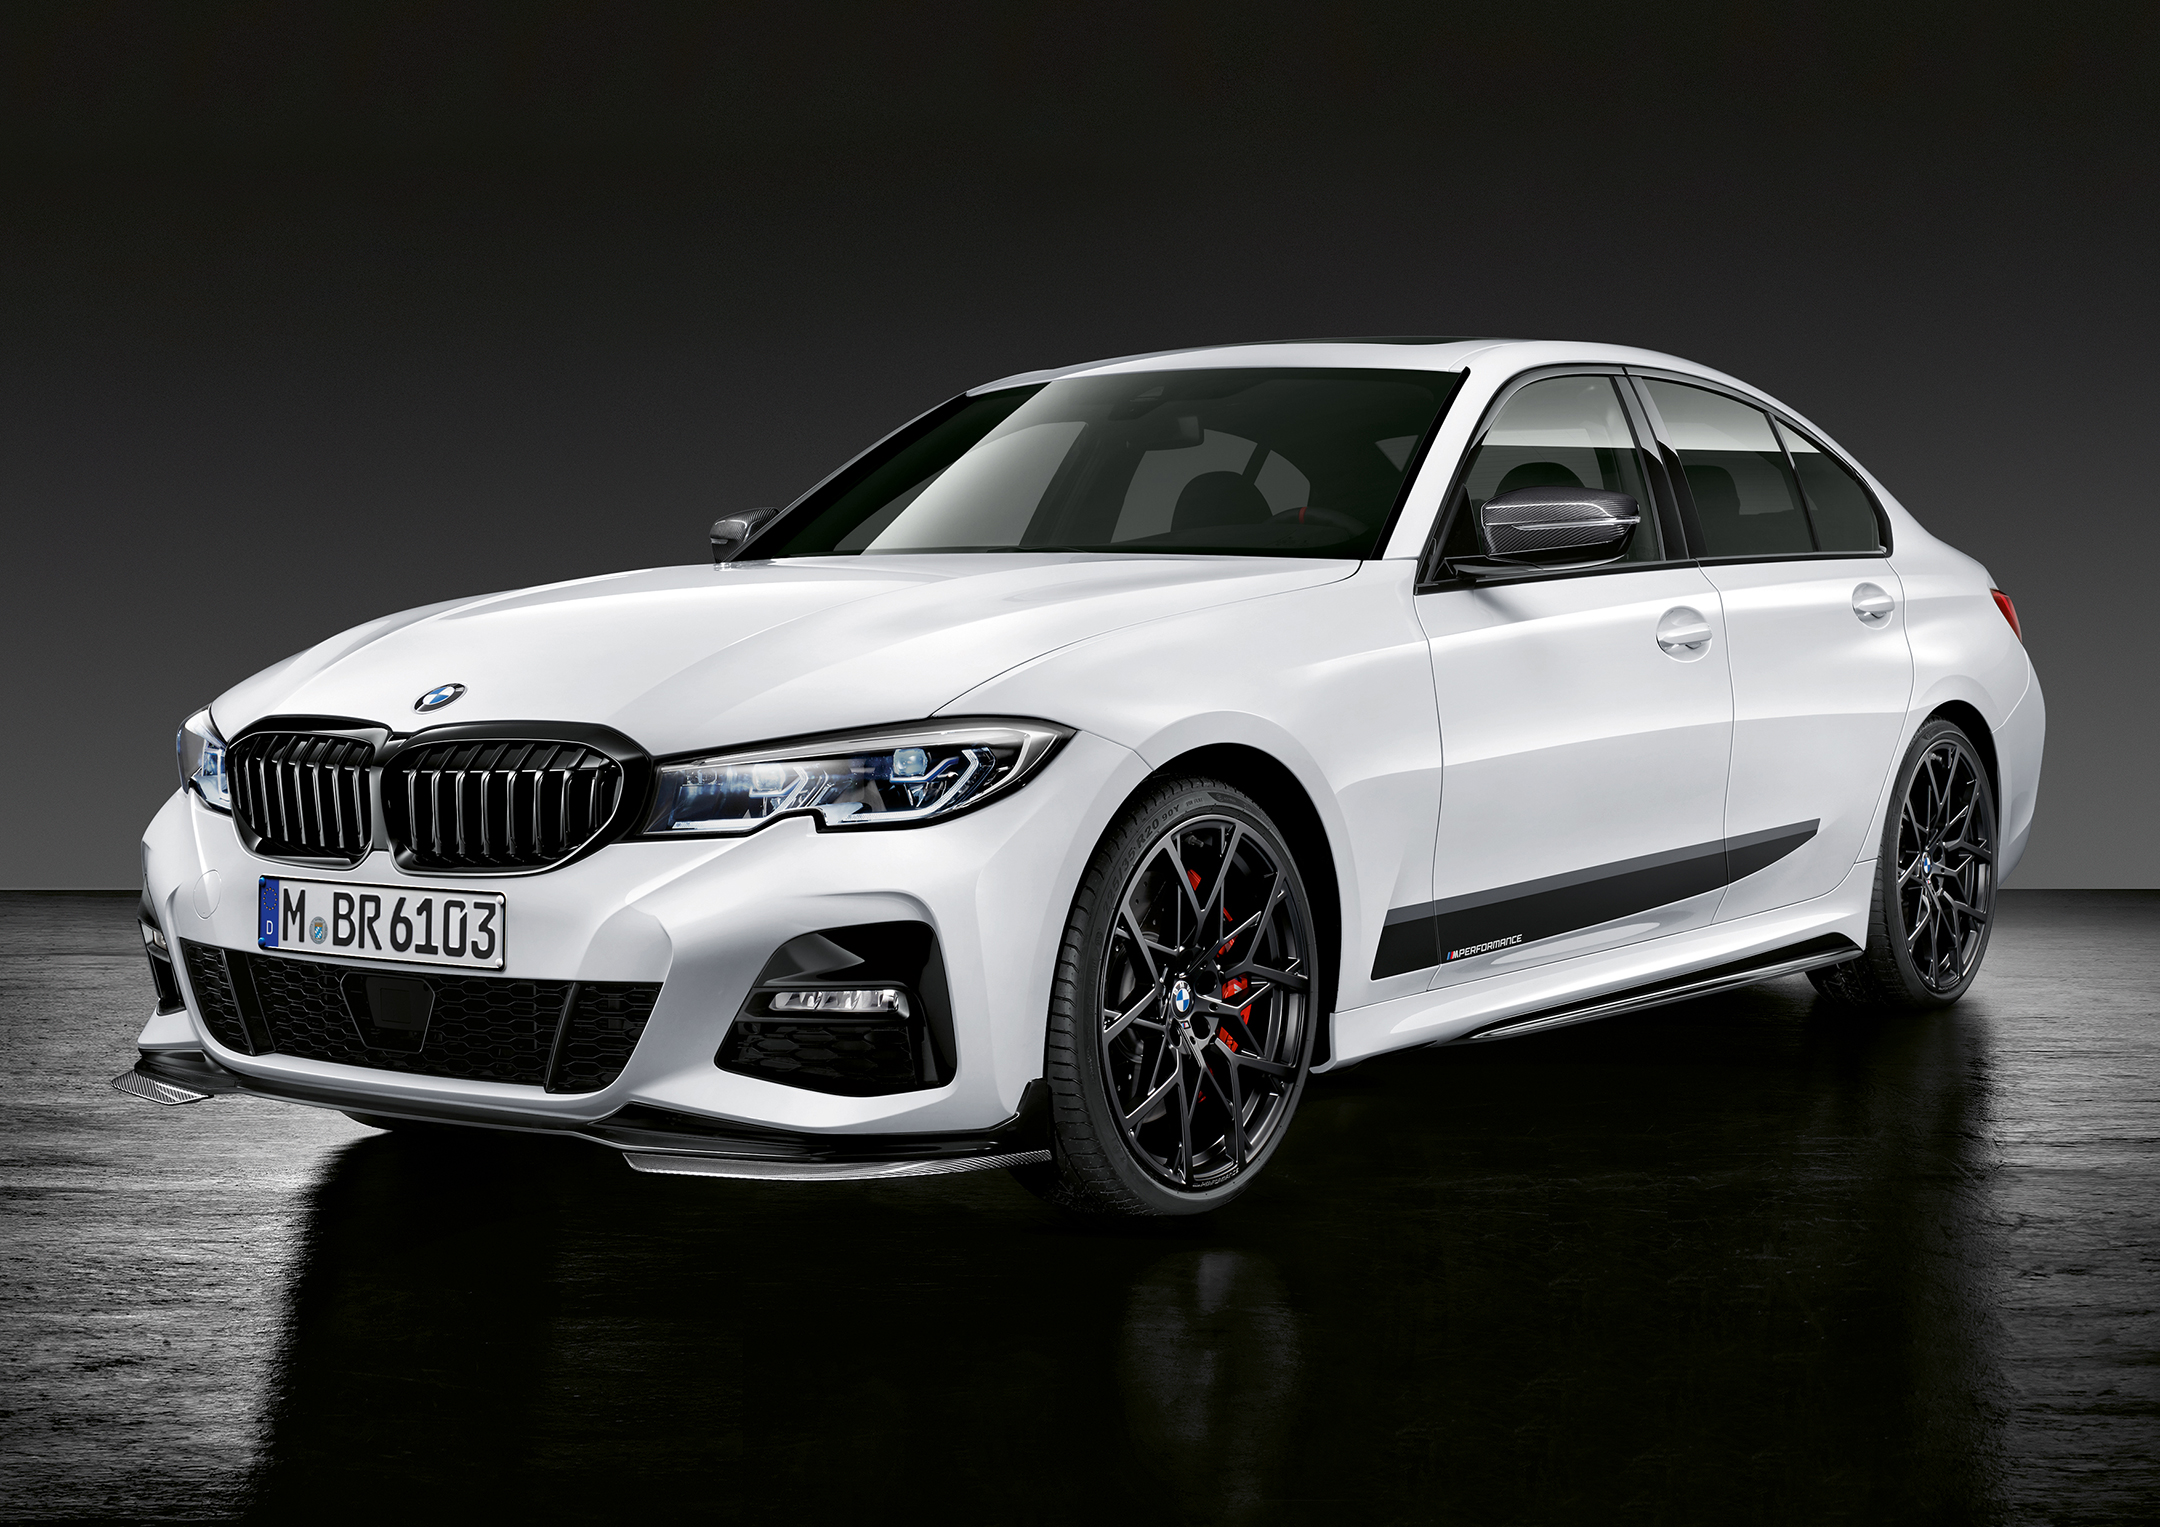 BMW Serie 3 Berline M Performance - 2018 - front side-face / profil avant